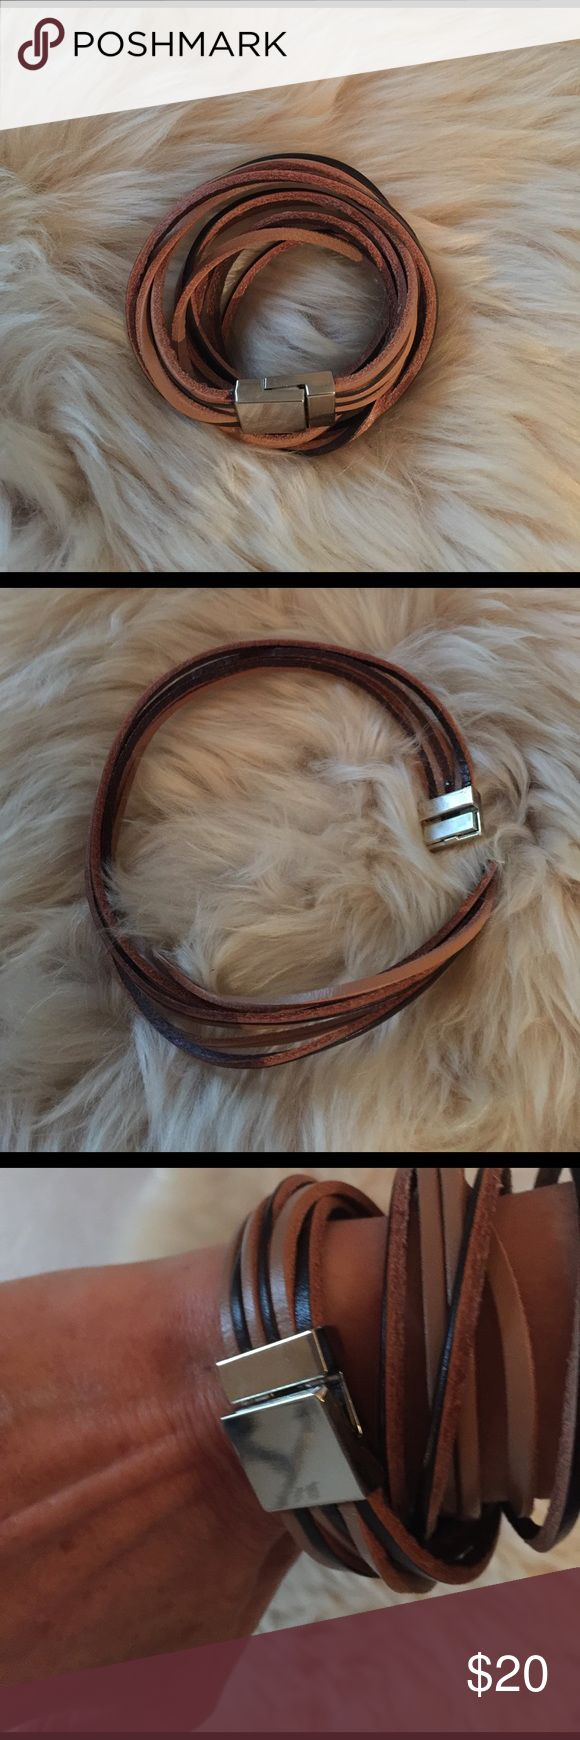 "BOHO Leather Strand Wrap Bracelet BOHO Leather Strand Wrap Bracelet With Magnetic Silver Closure. Light and dark strands of leather six strands total.  16""L and .75""W. Bracelet is intended to be wrapped around wrist twice.  Perfect for festival season!! Jewelry Bracelets"